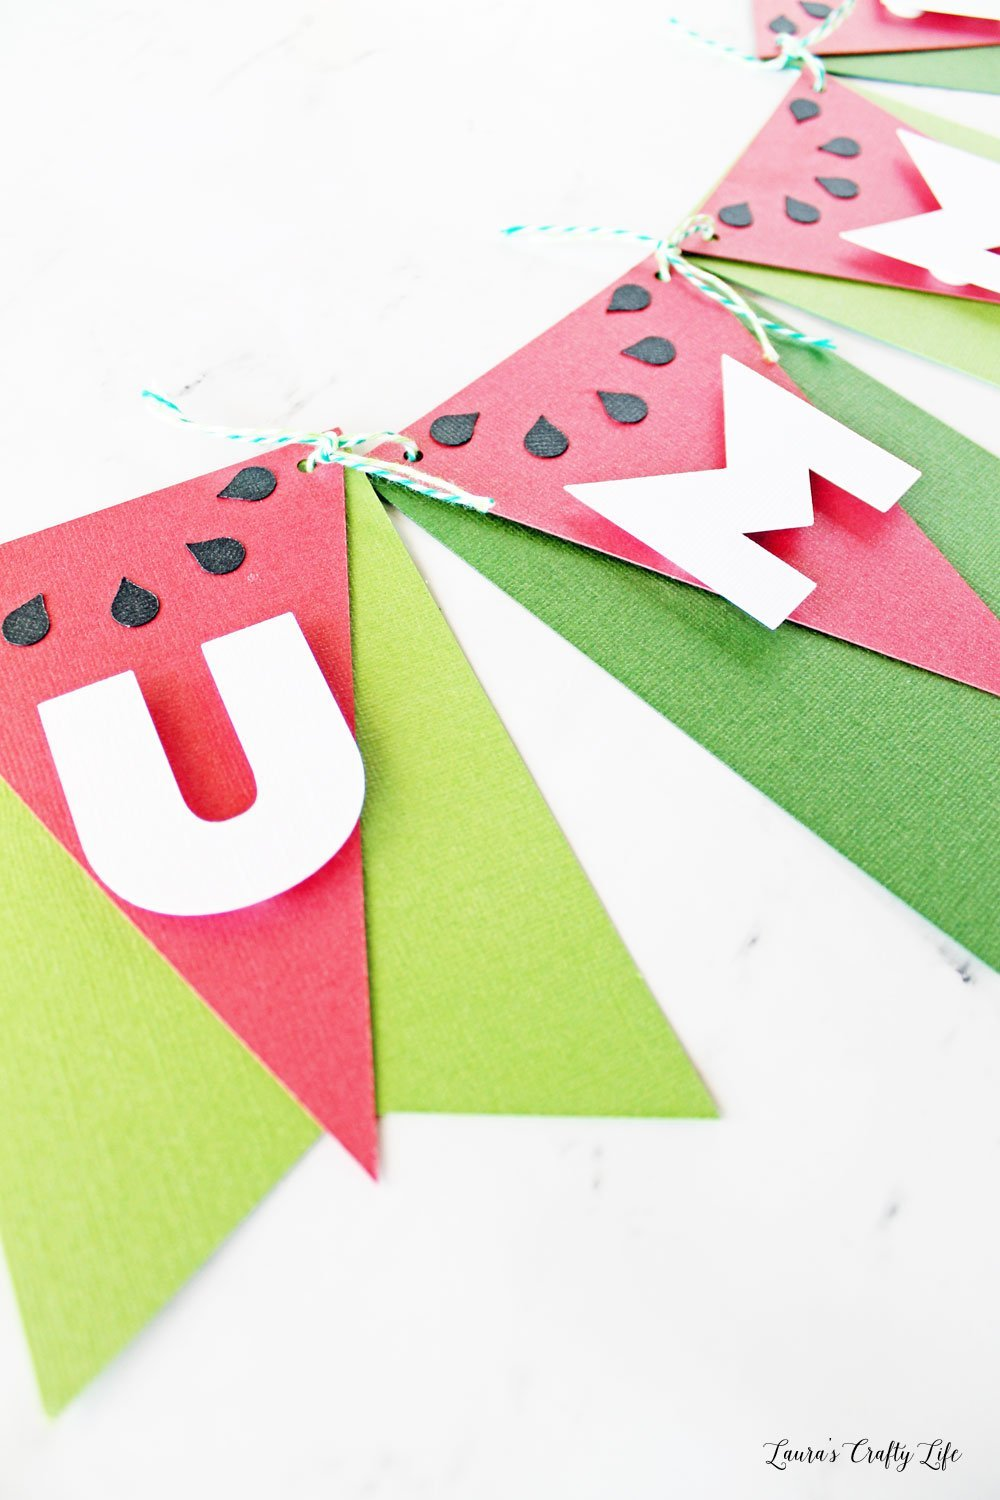 Use adhesive foam dots to attach letters to banner